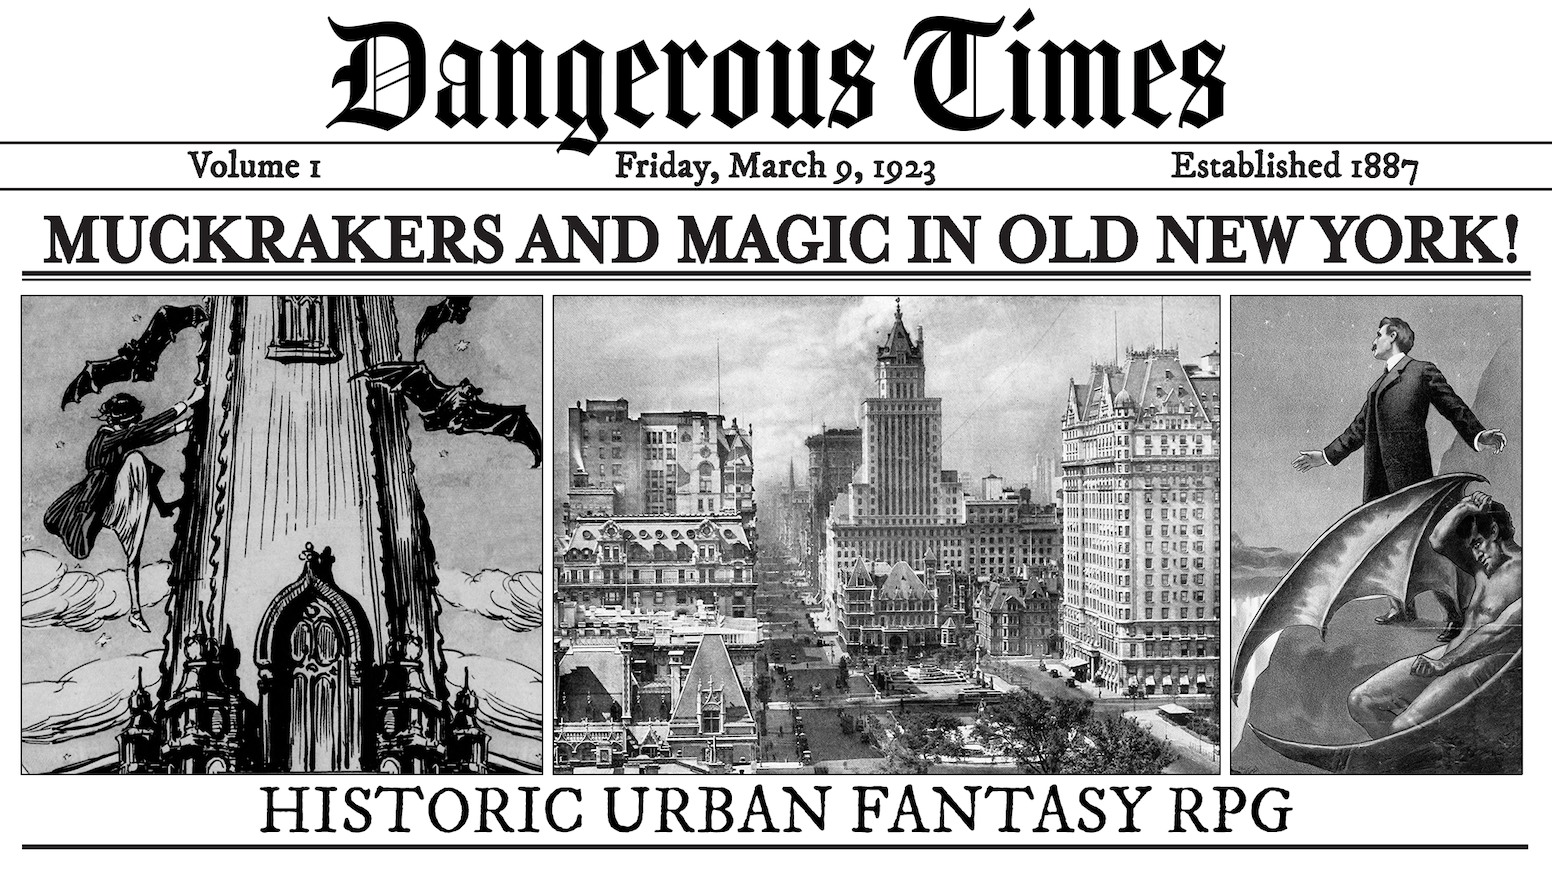 A complete RPG in zine form— Play as intrepid reporters in a 1920s New York filled with speakeasies, crime, and the occult!